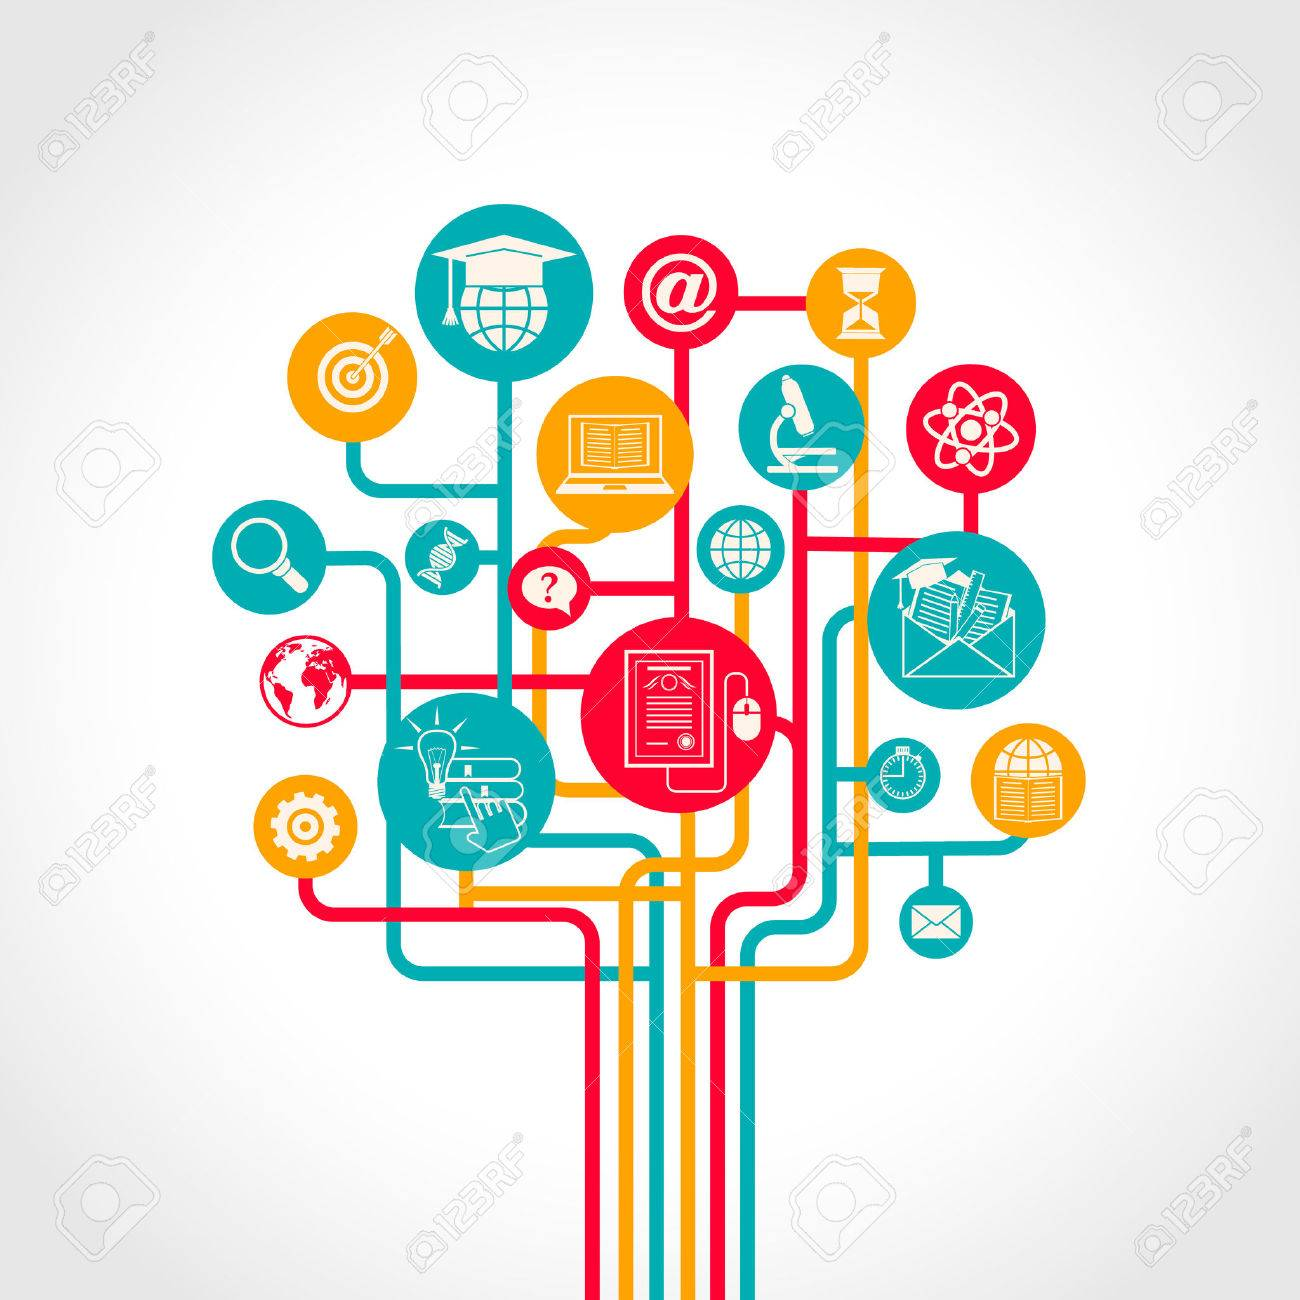 Online Education Tree Concept With E-learning Training Resources ...